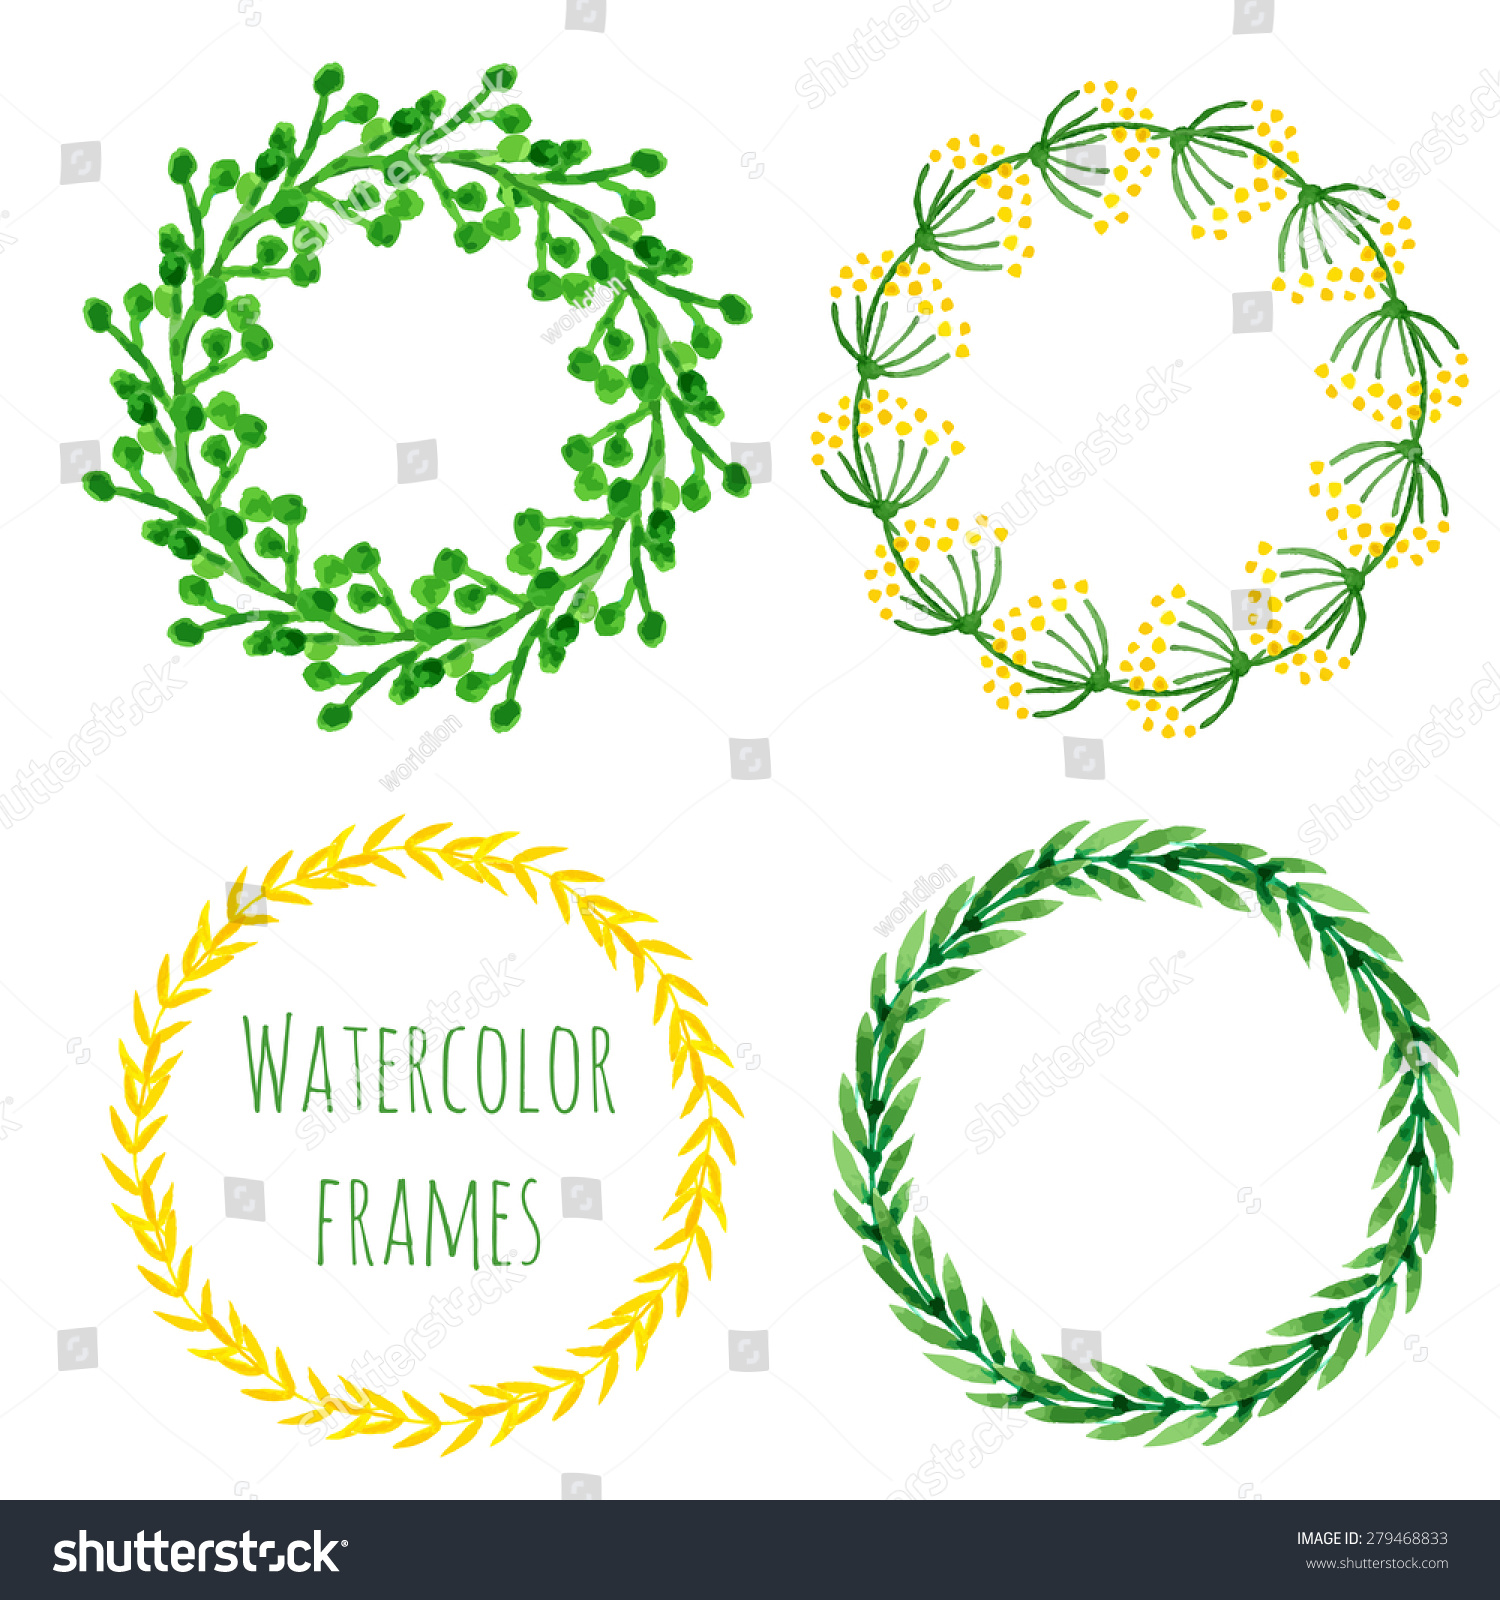 Watercolor Wreath Set Floral Round Frame Stock Vector (Royalty Free ...